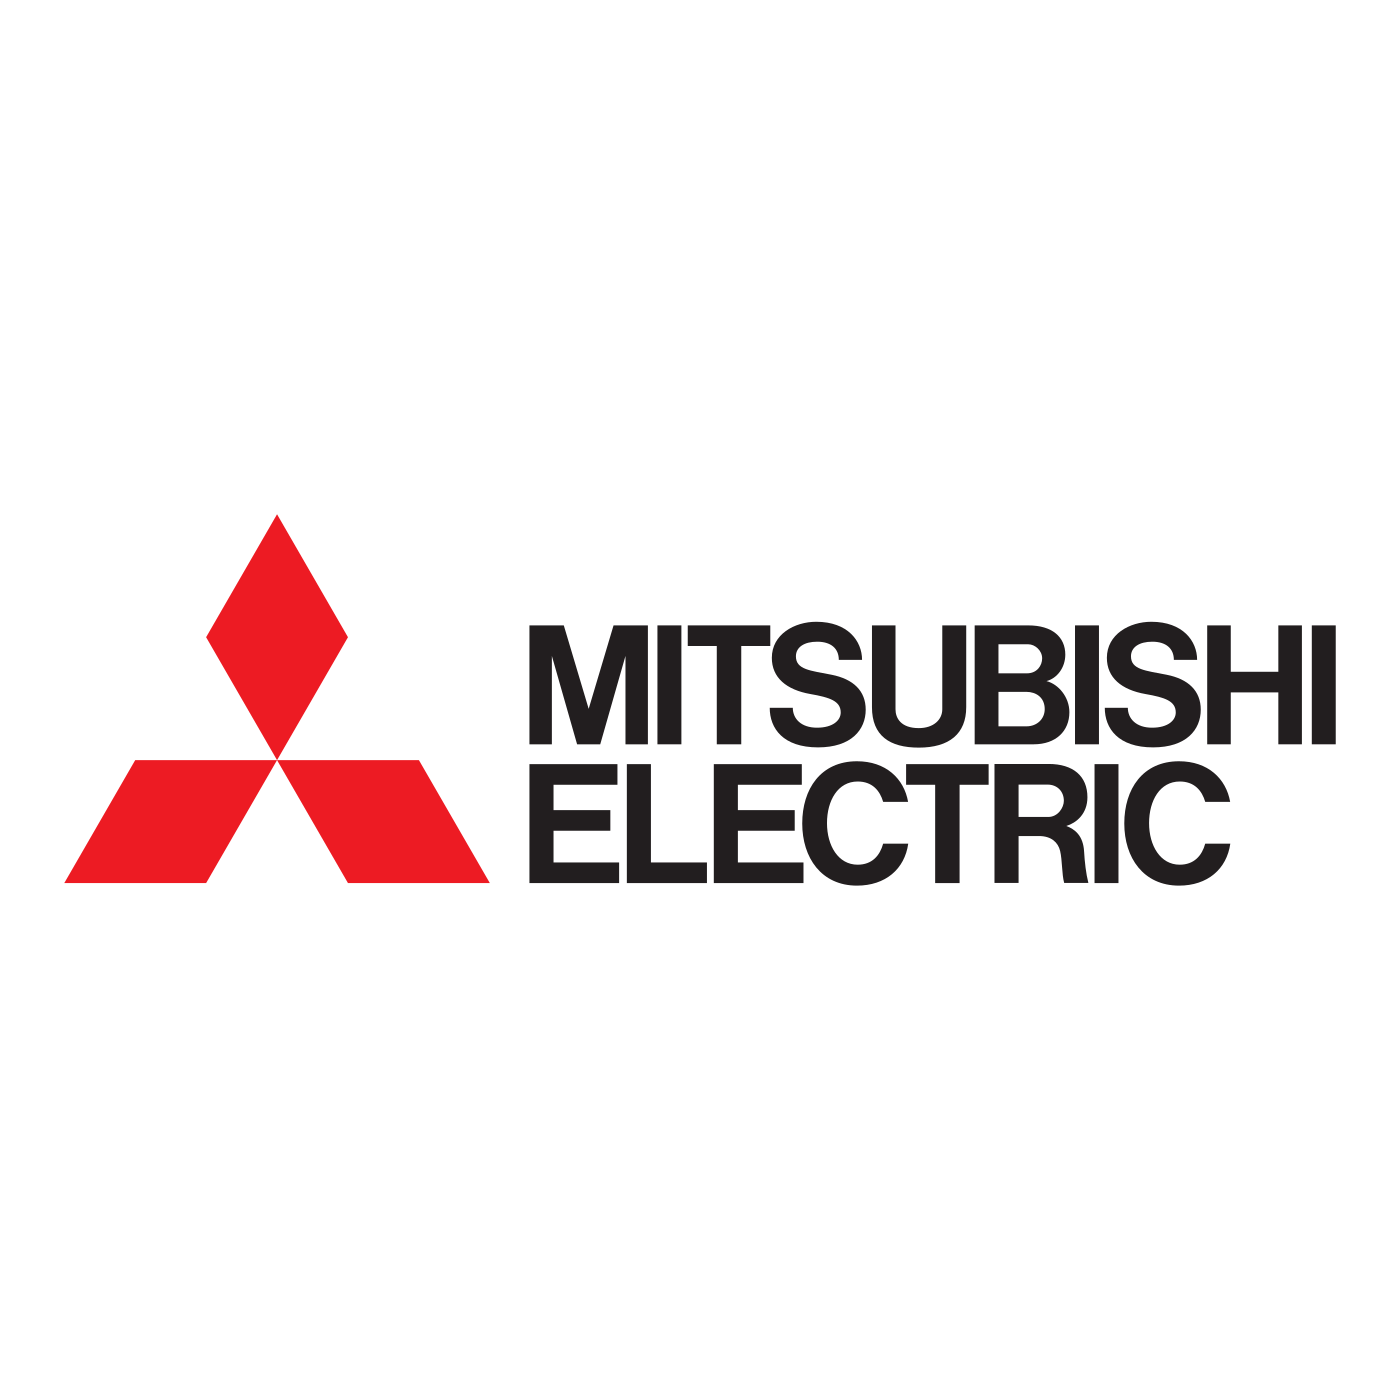 logo Mitsubishi_Electric